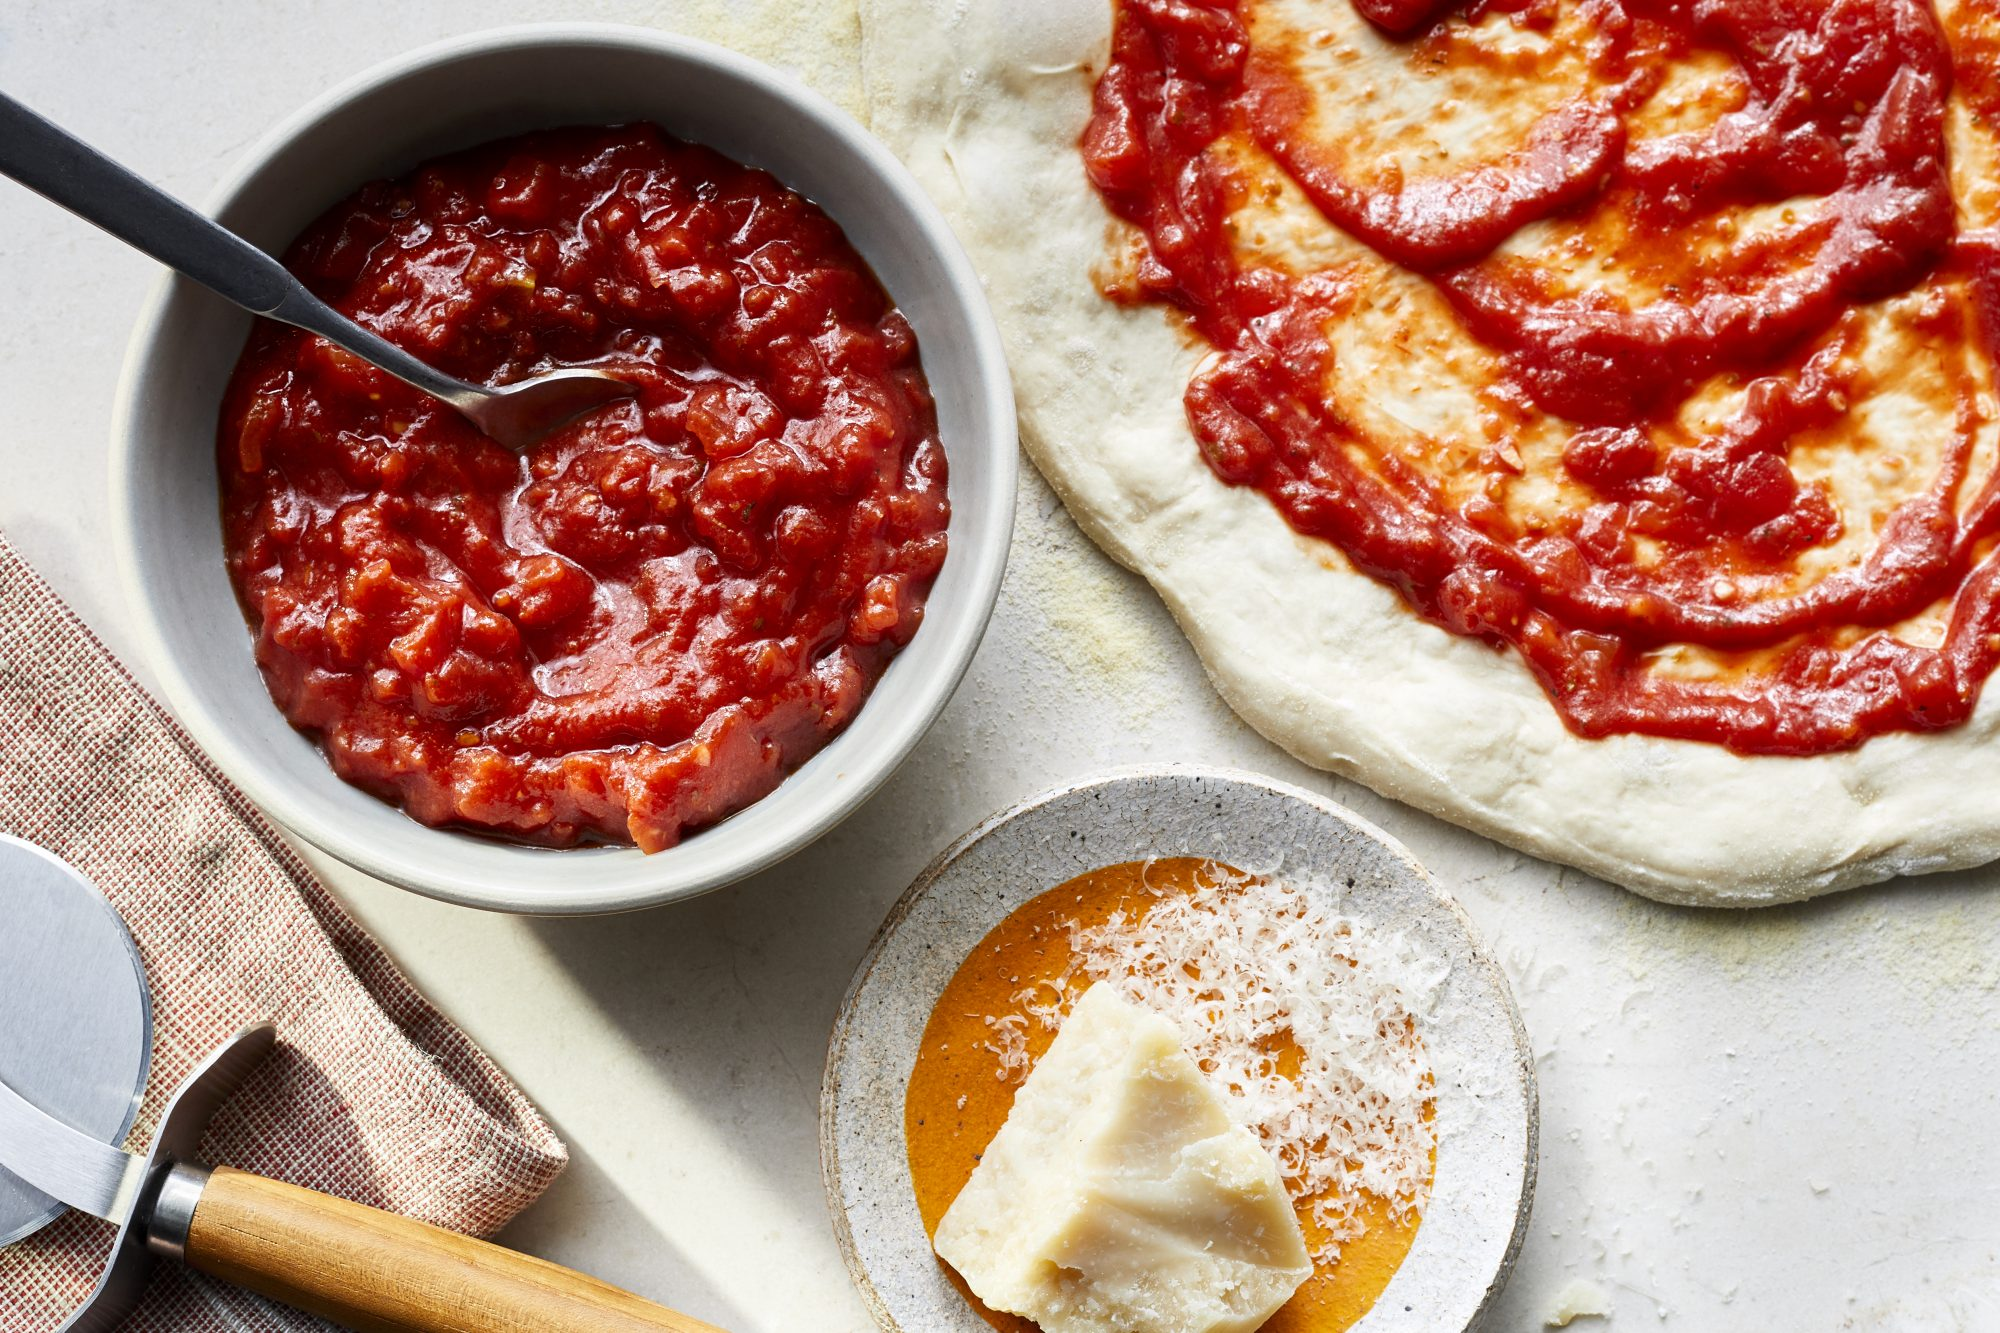 The Best Canned Tomato Sauce, According to a Pizza Chef